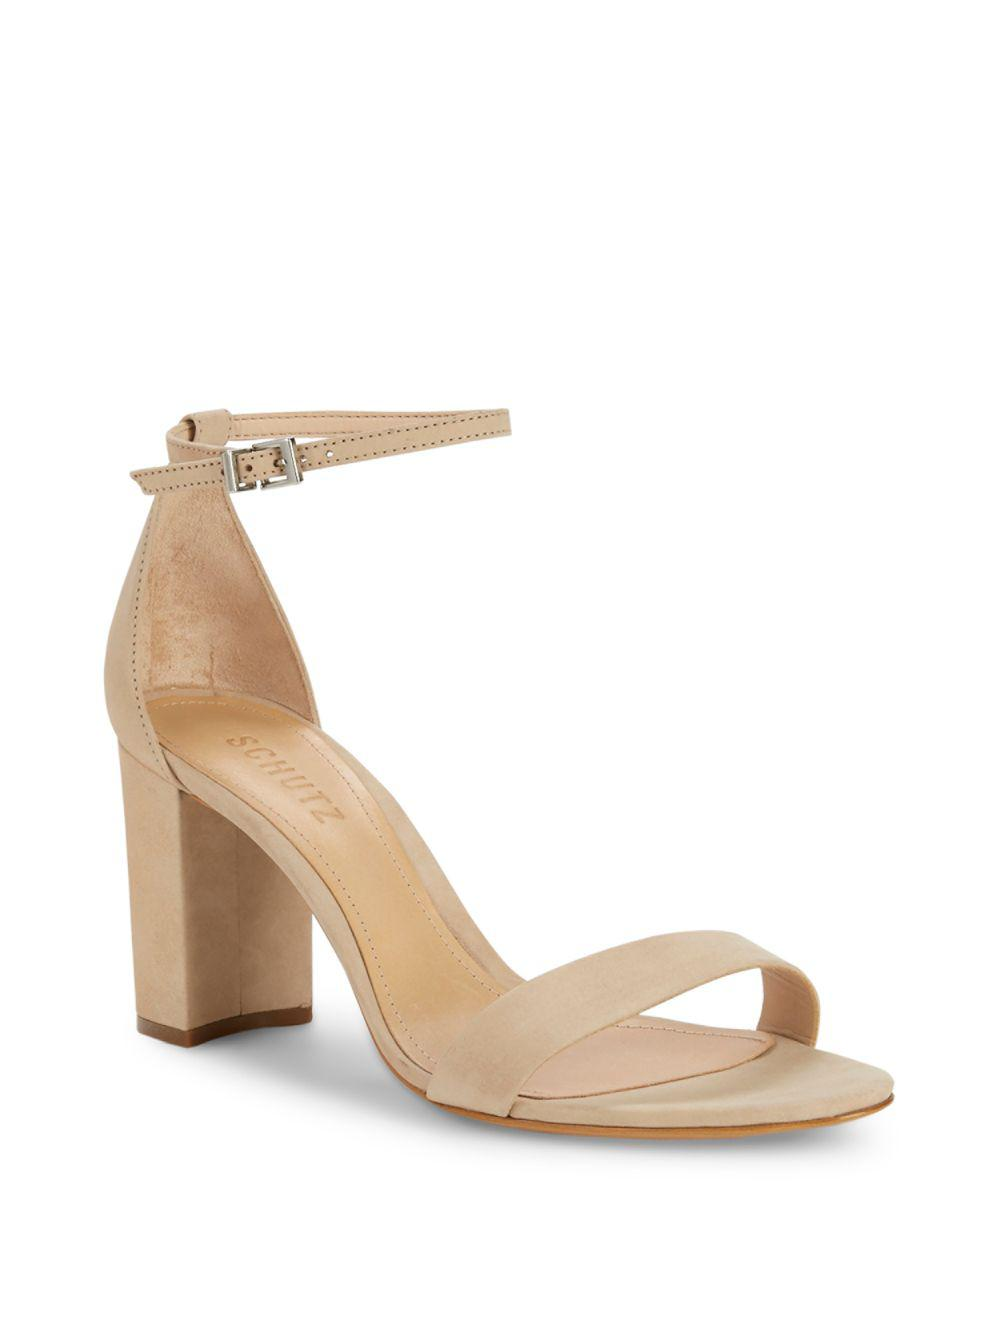 02b537bcd2d0 Lyst - Schutz Anna Lee Leather Sandals in Natural